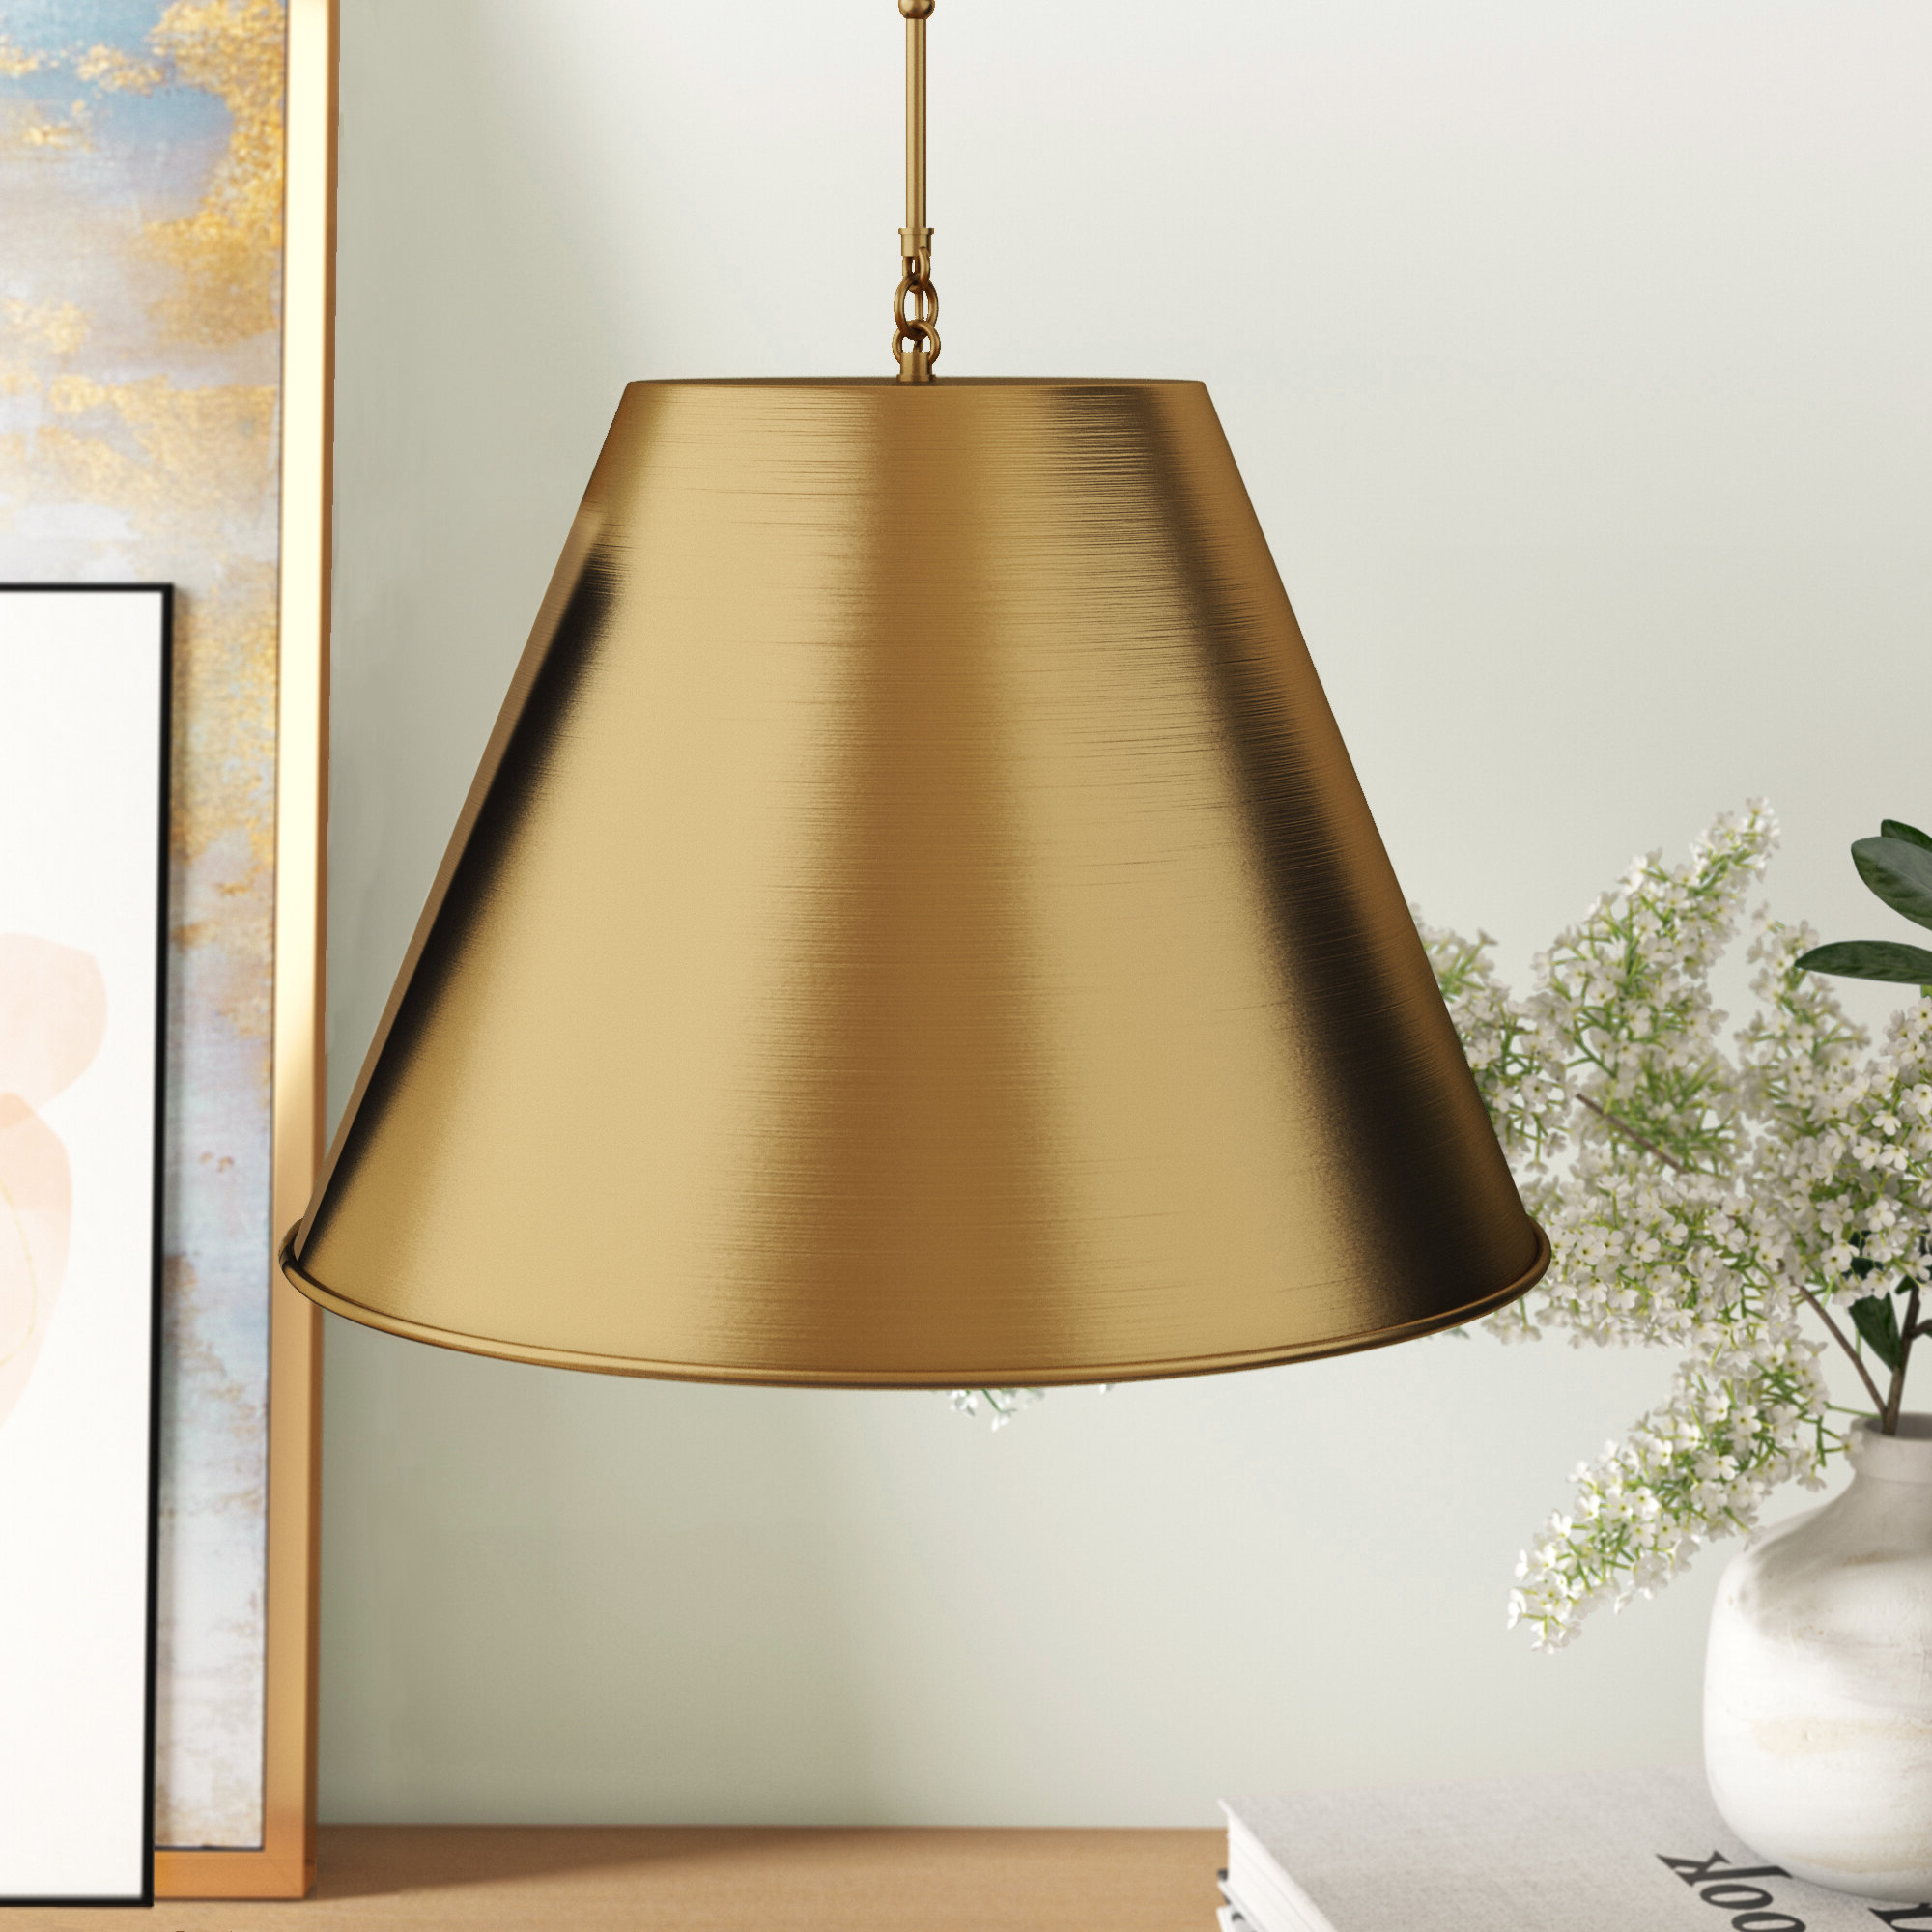 Nadeau 1 Light Single Cone Pendant In Fashionable Nadeau 1 Light Single Cone Pendants (View 7 of 20)